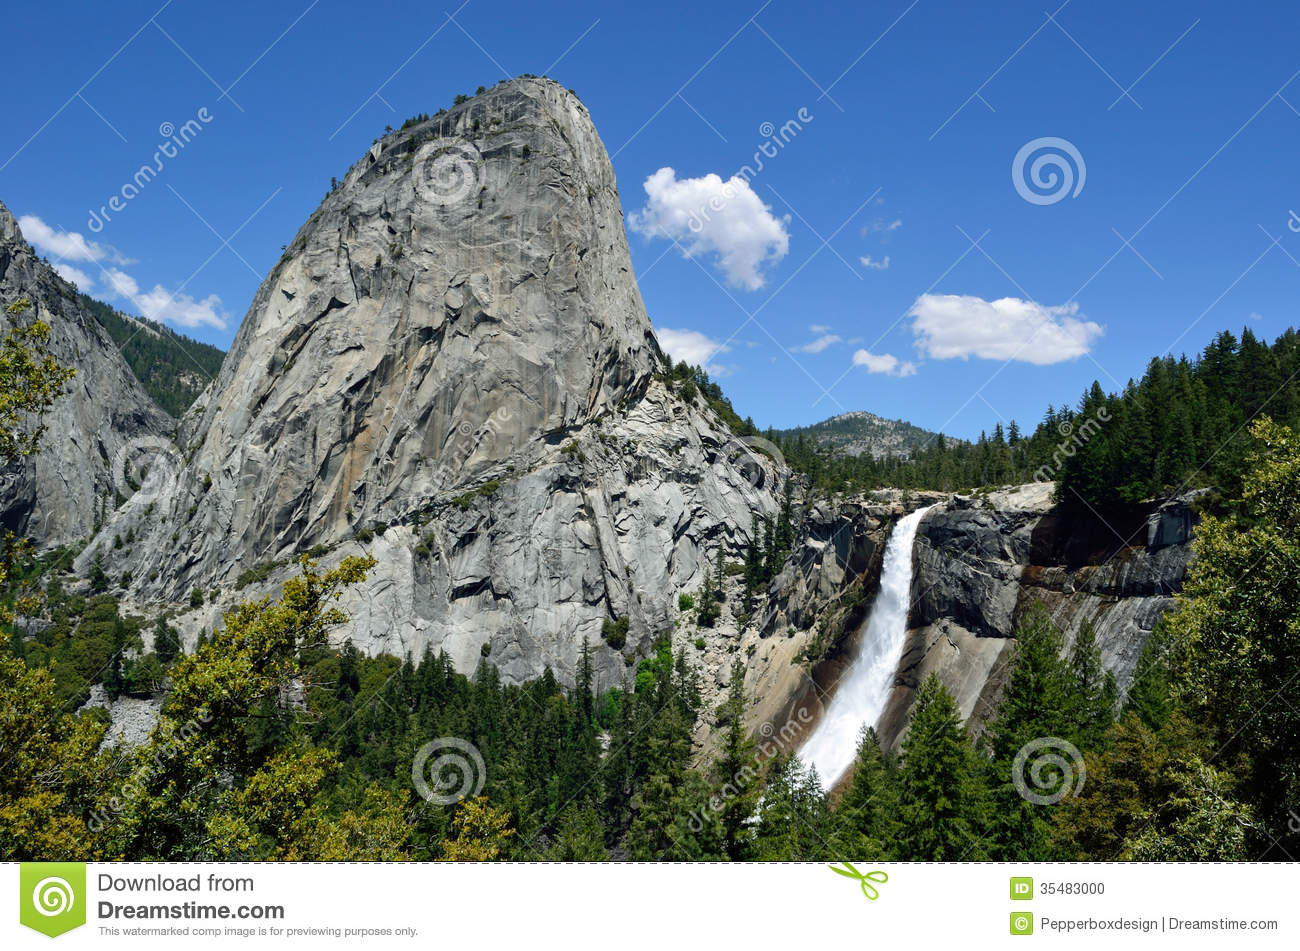 Nevada Fall clipart #19, Download drawings